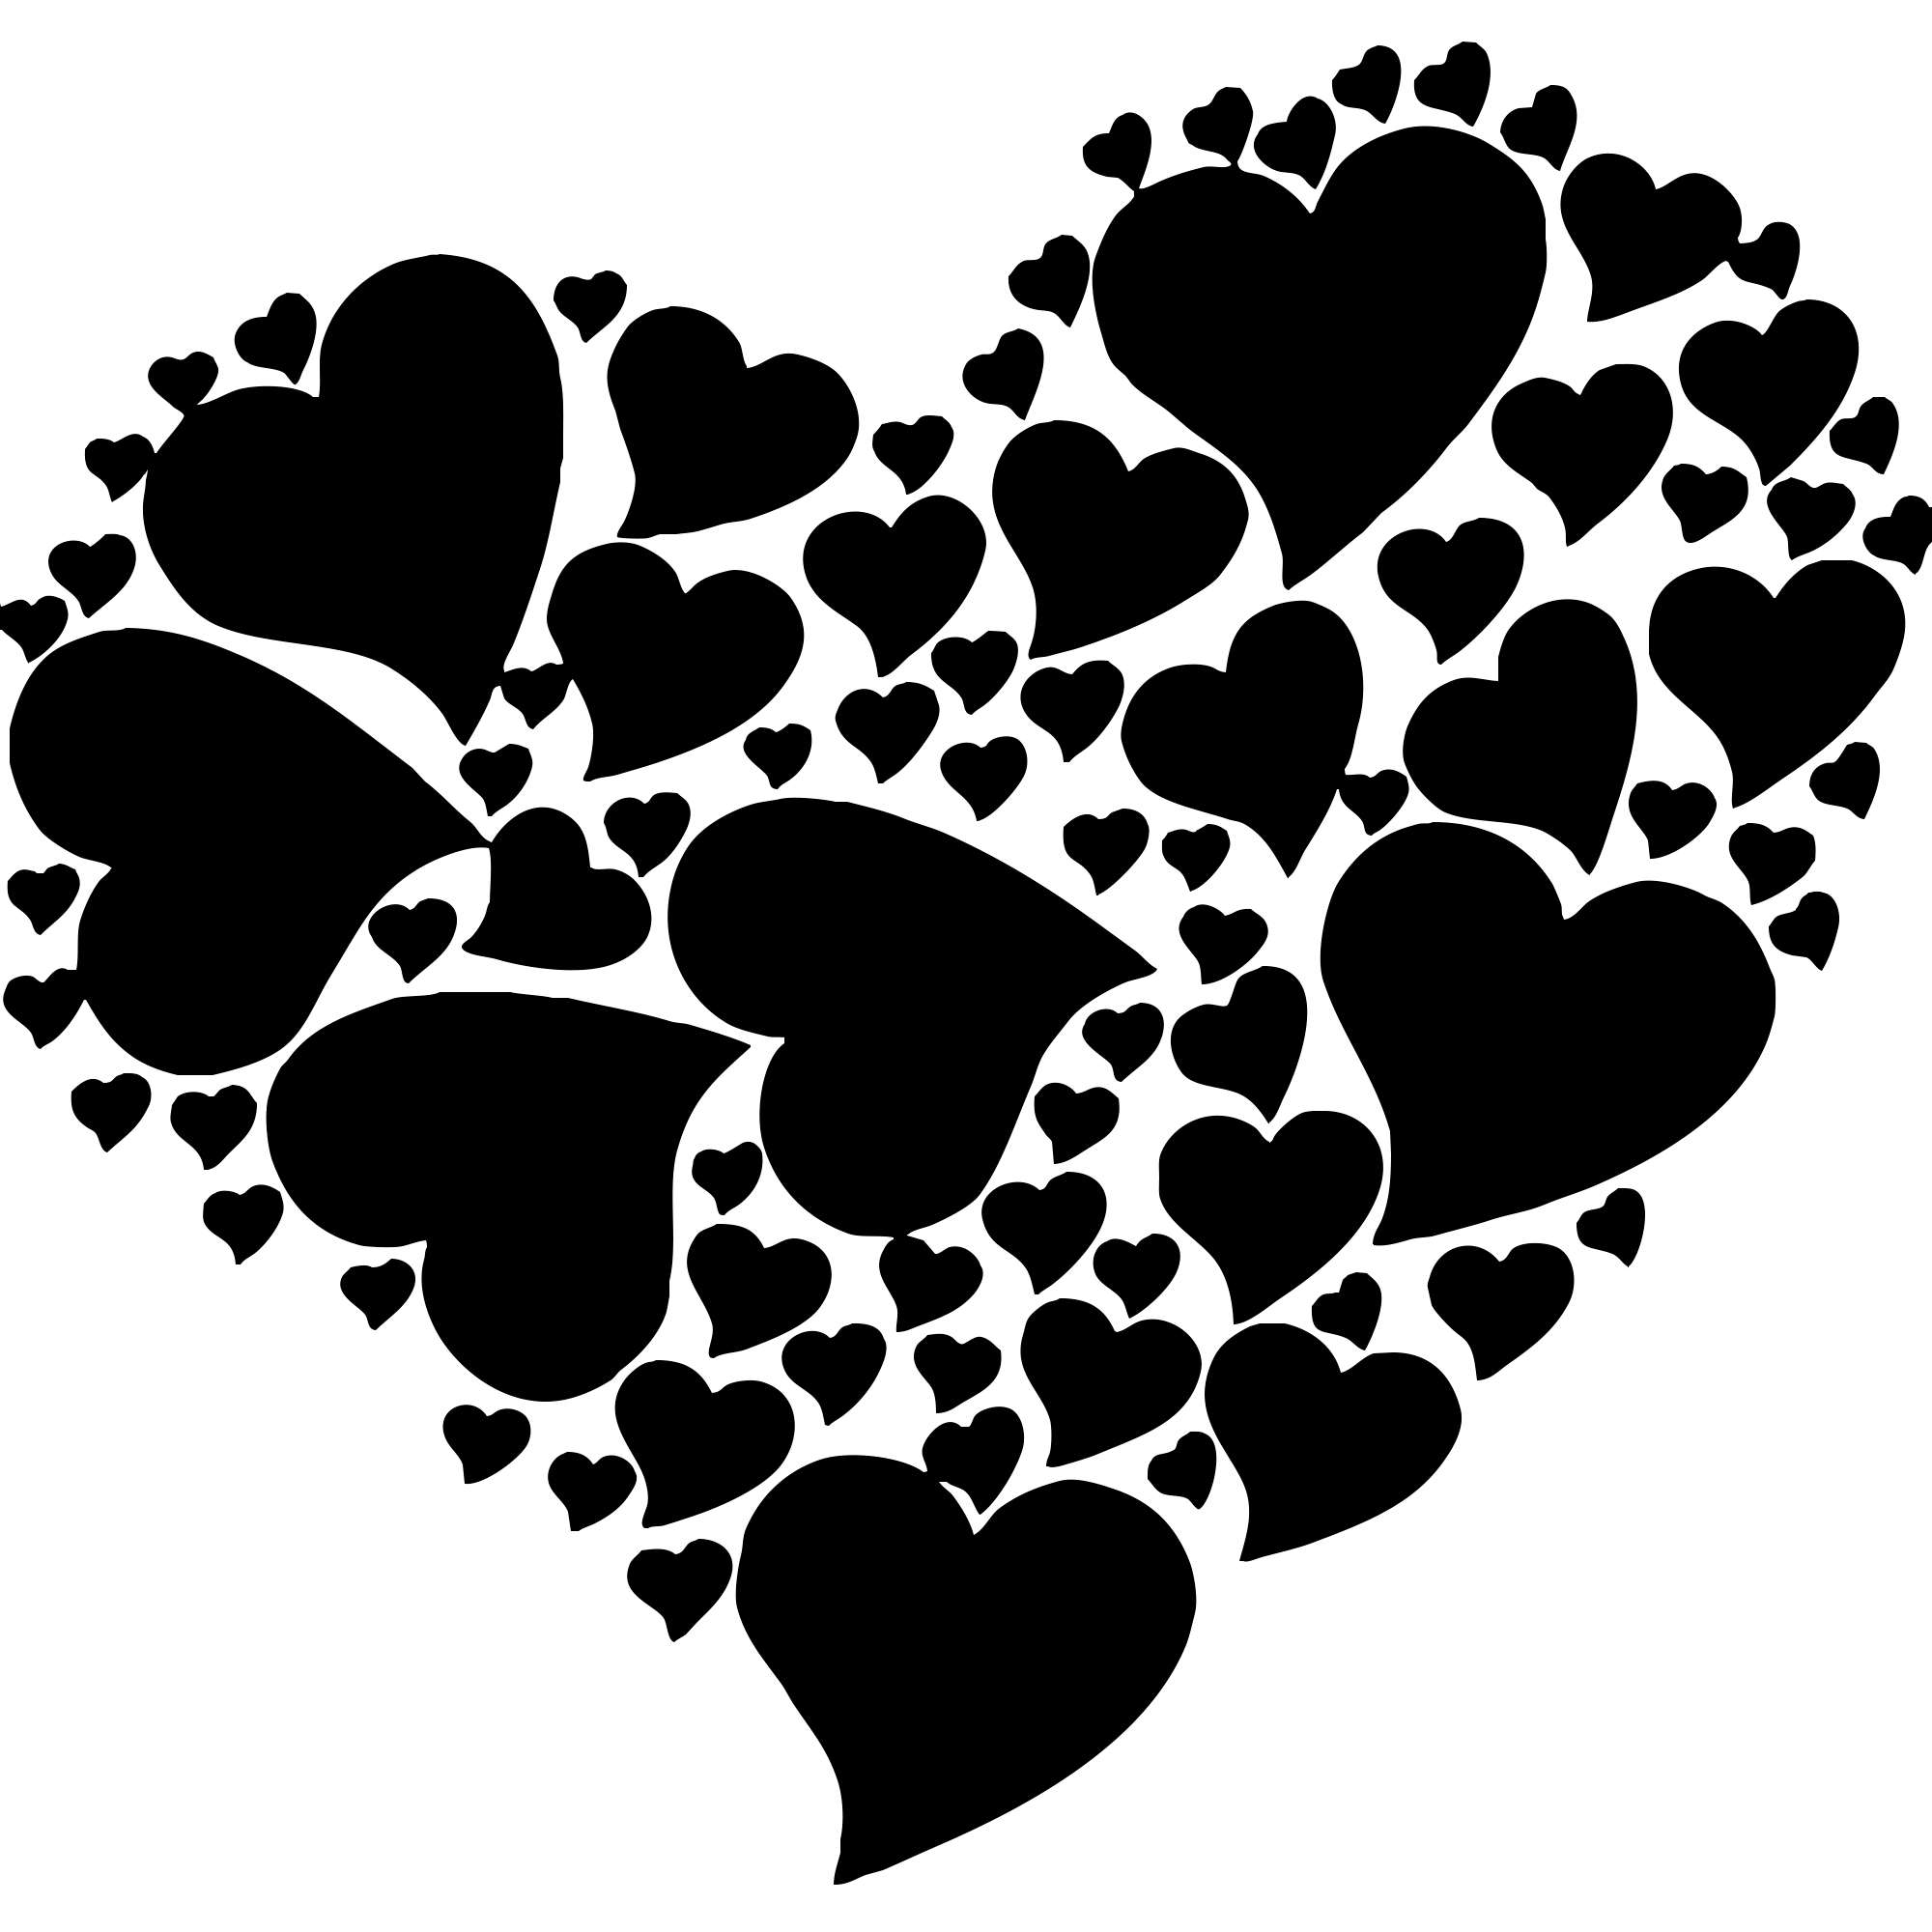 printable picture of a heart free printable heart coloring pages for kids a of picture printable heart